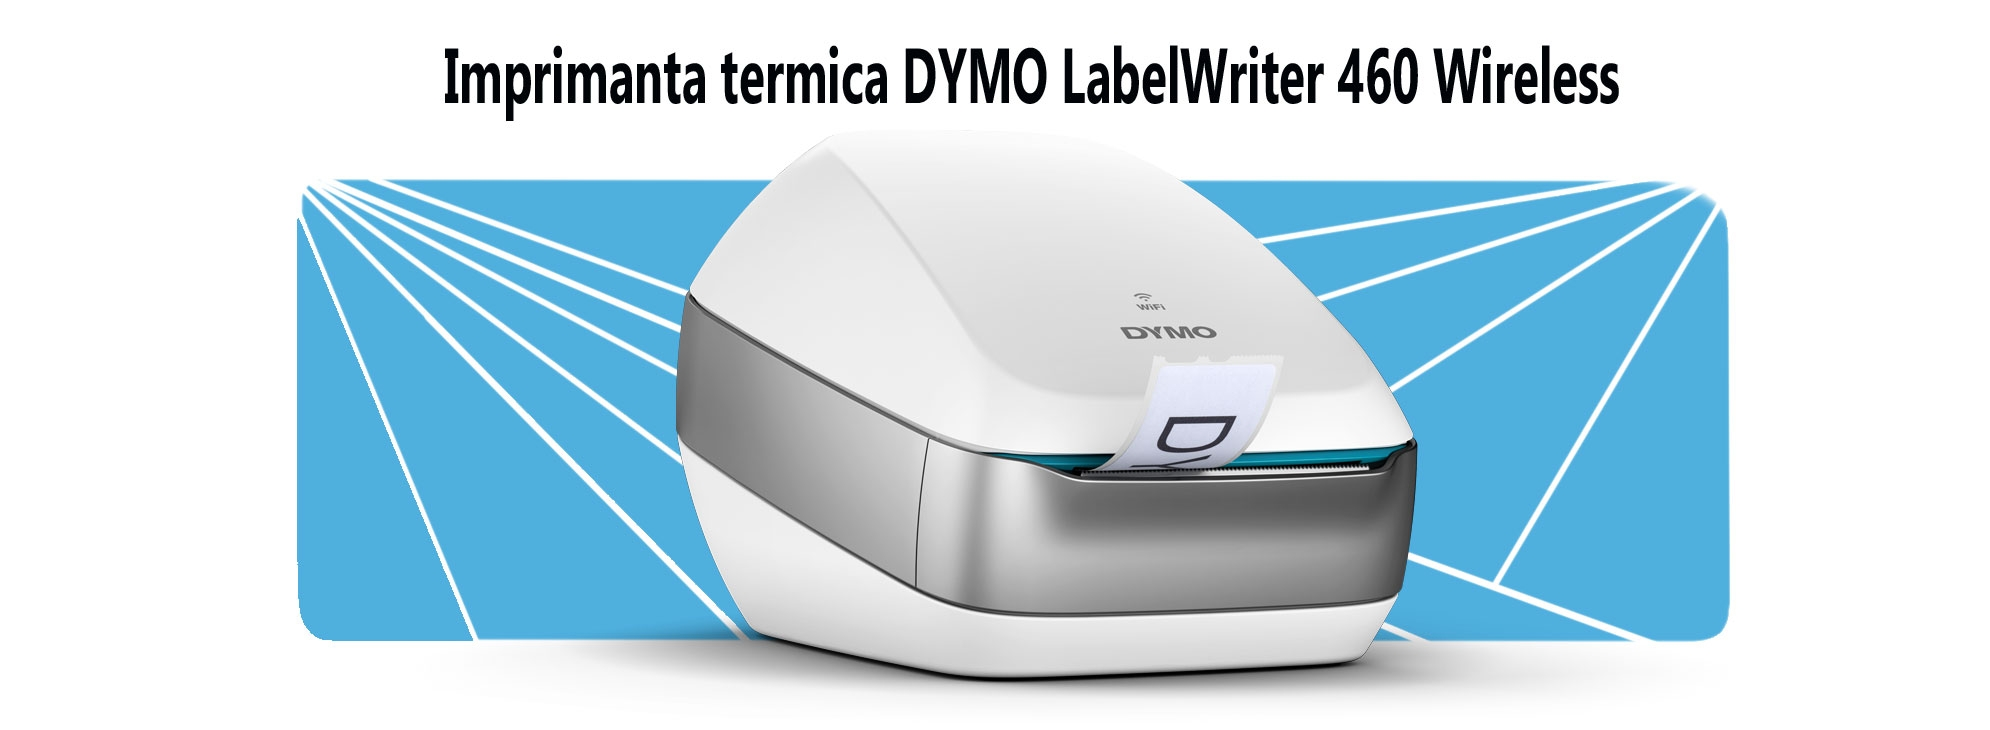 Imprimanta termica DYMO LabelWriter 460 Wireless